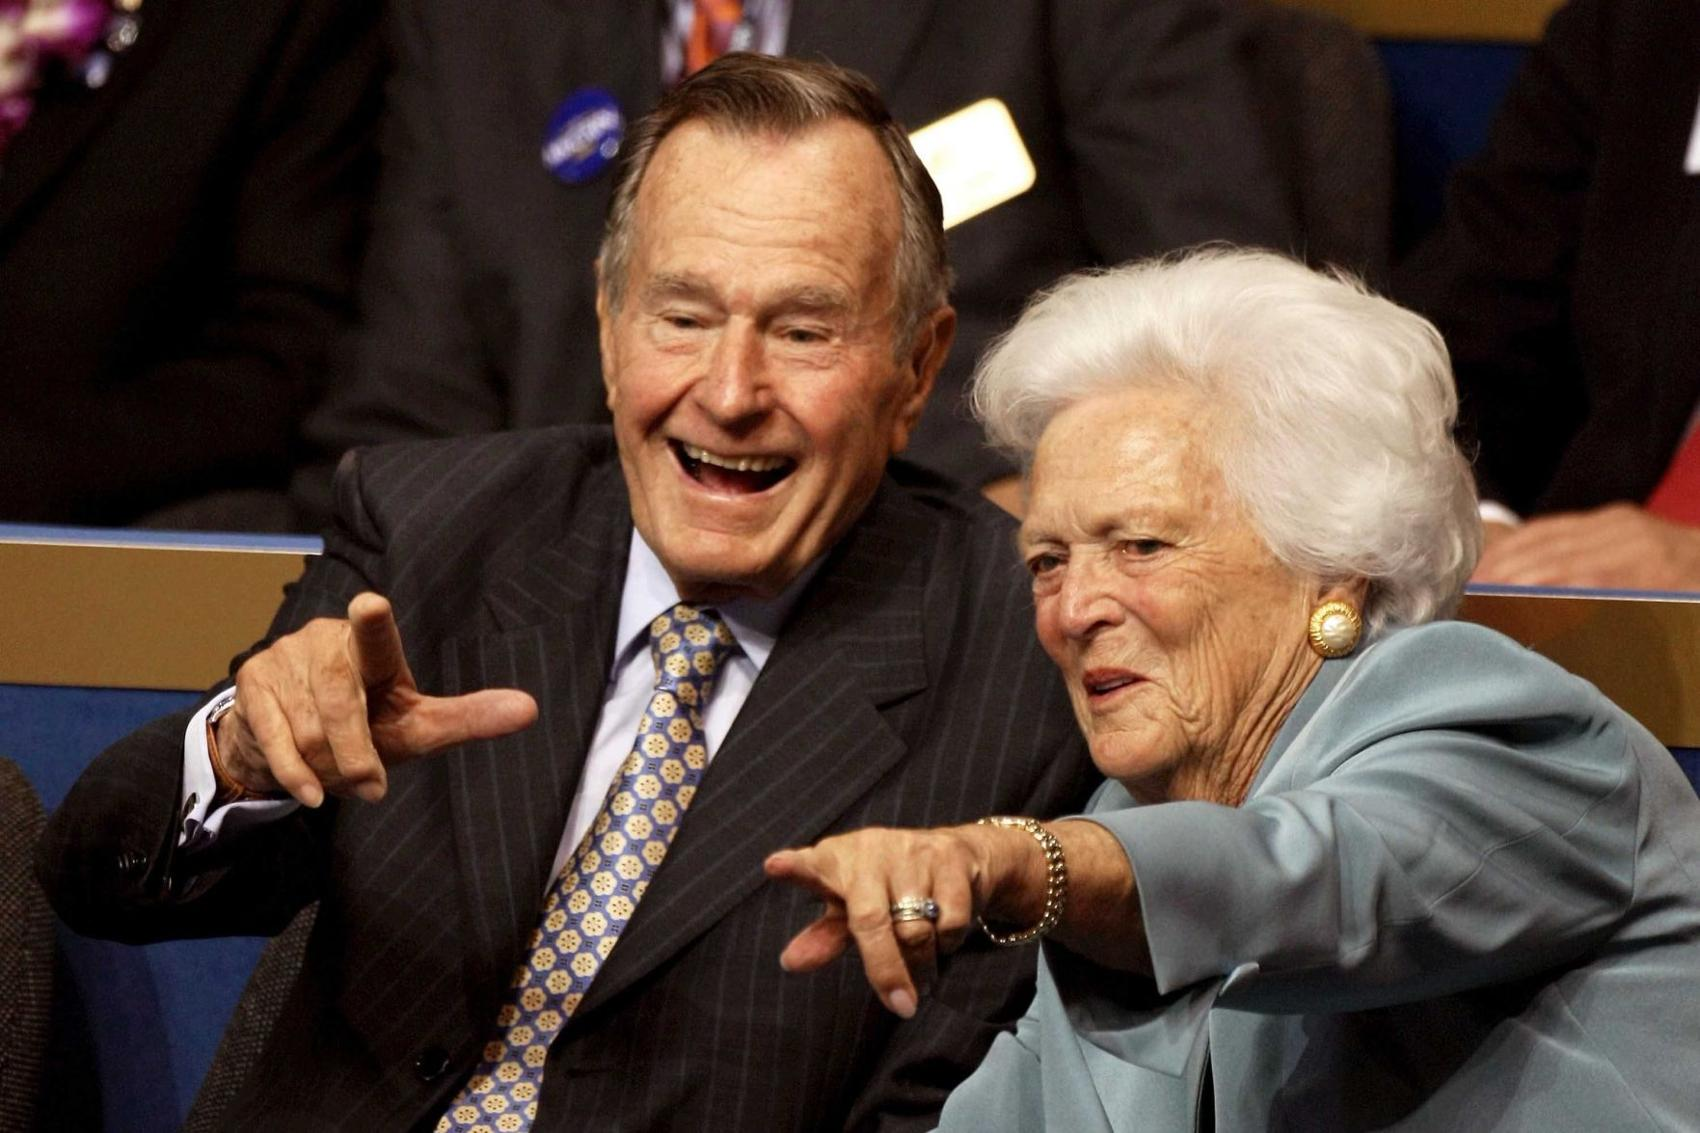 facts about President George H.W. Bush_2